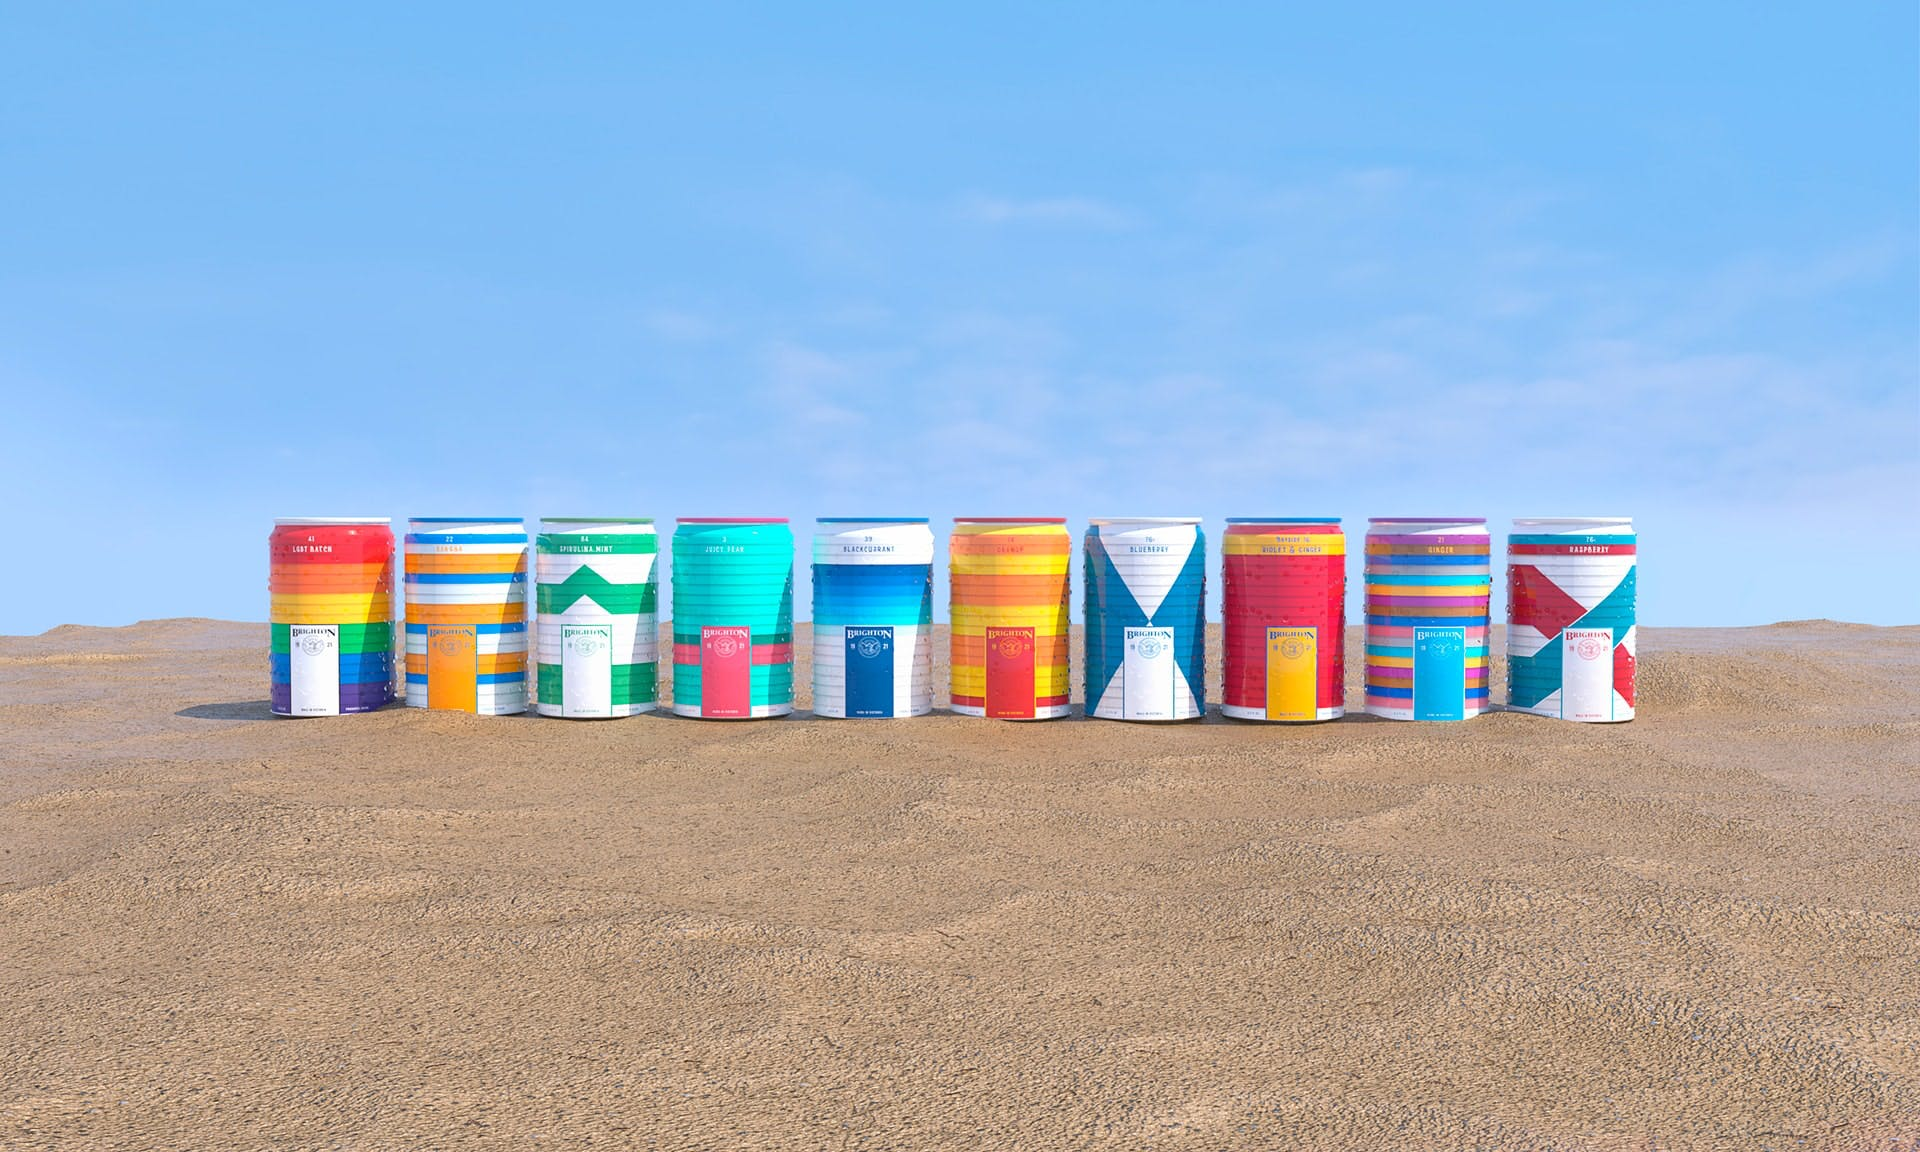 colourful soda cans lined up